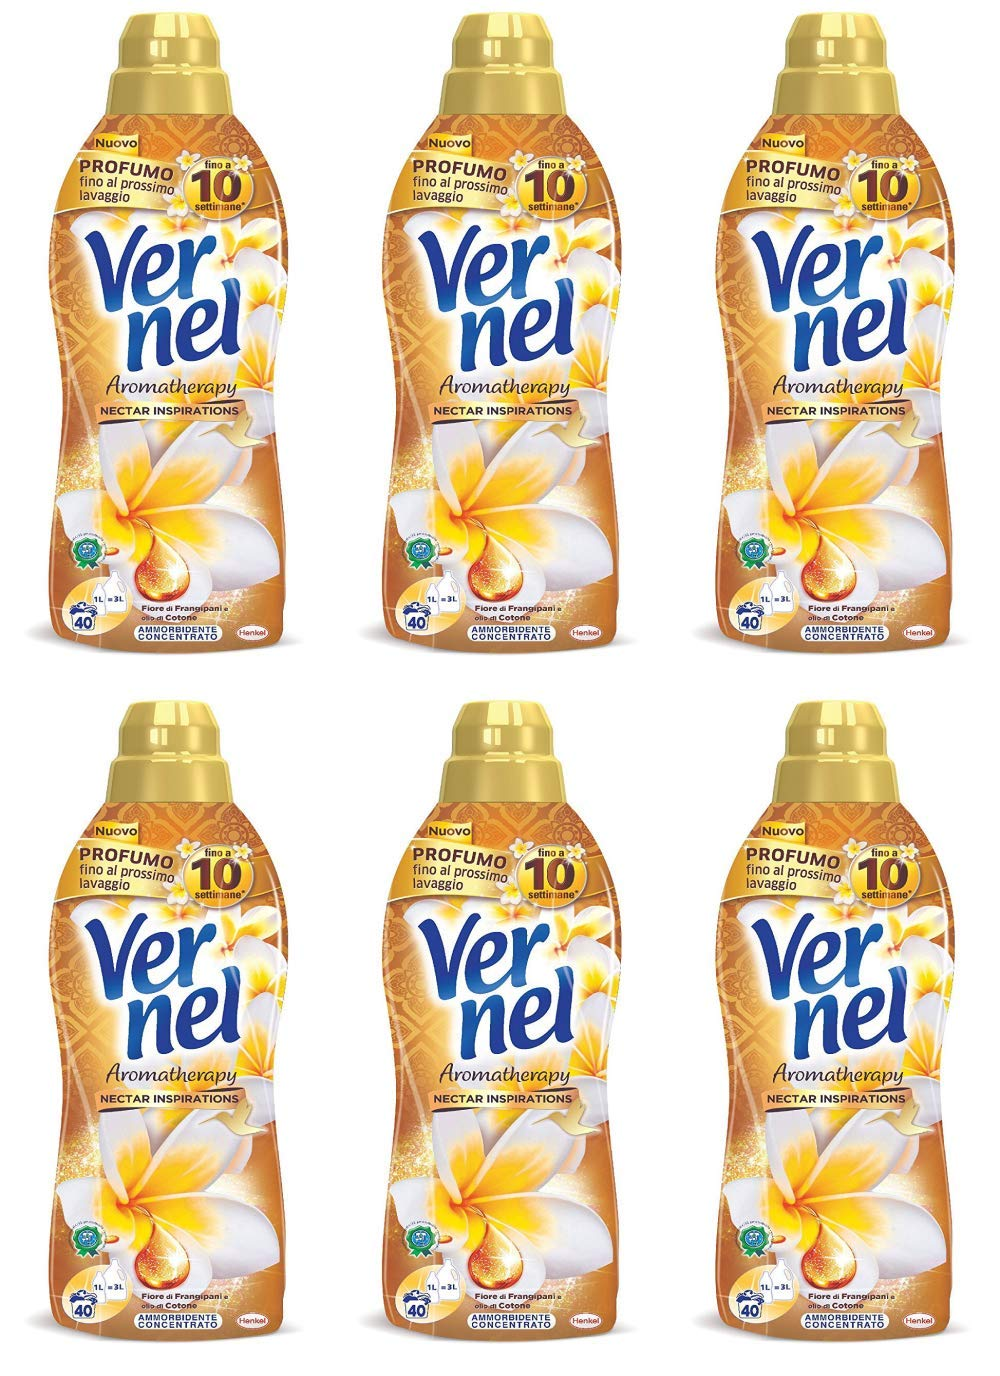 Vernel - Concentrated Fabric Softener, Aromatherapy Frangipani Flowers and Cotton Oil Scent 1 Litre /33.81fl.oz, pack of 6